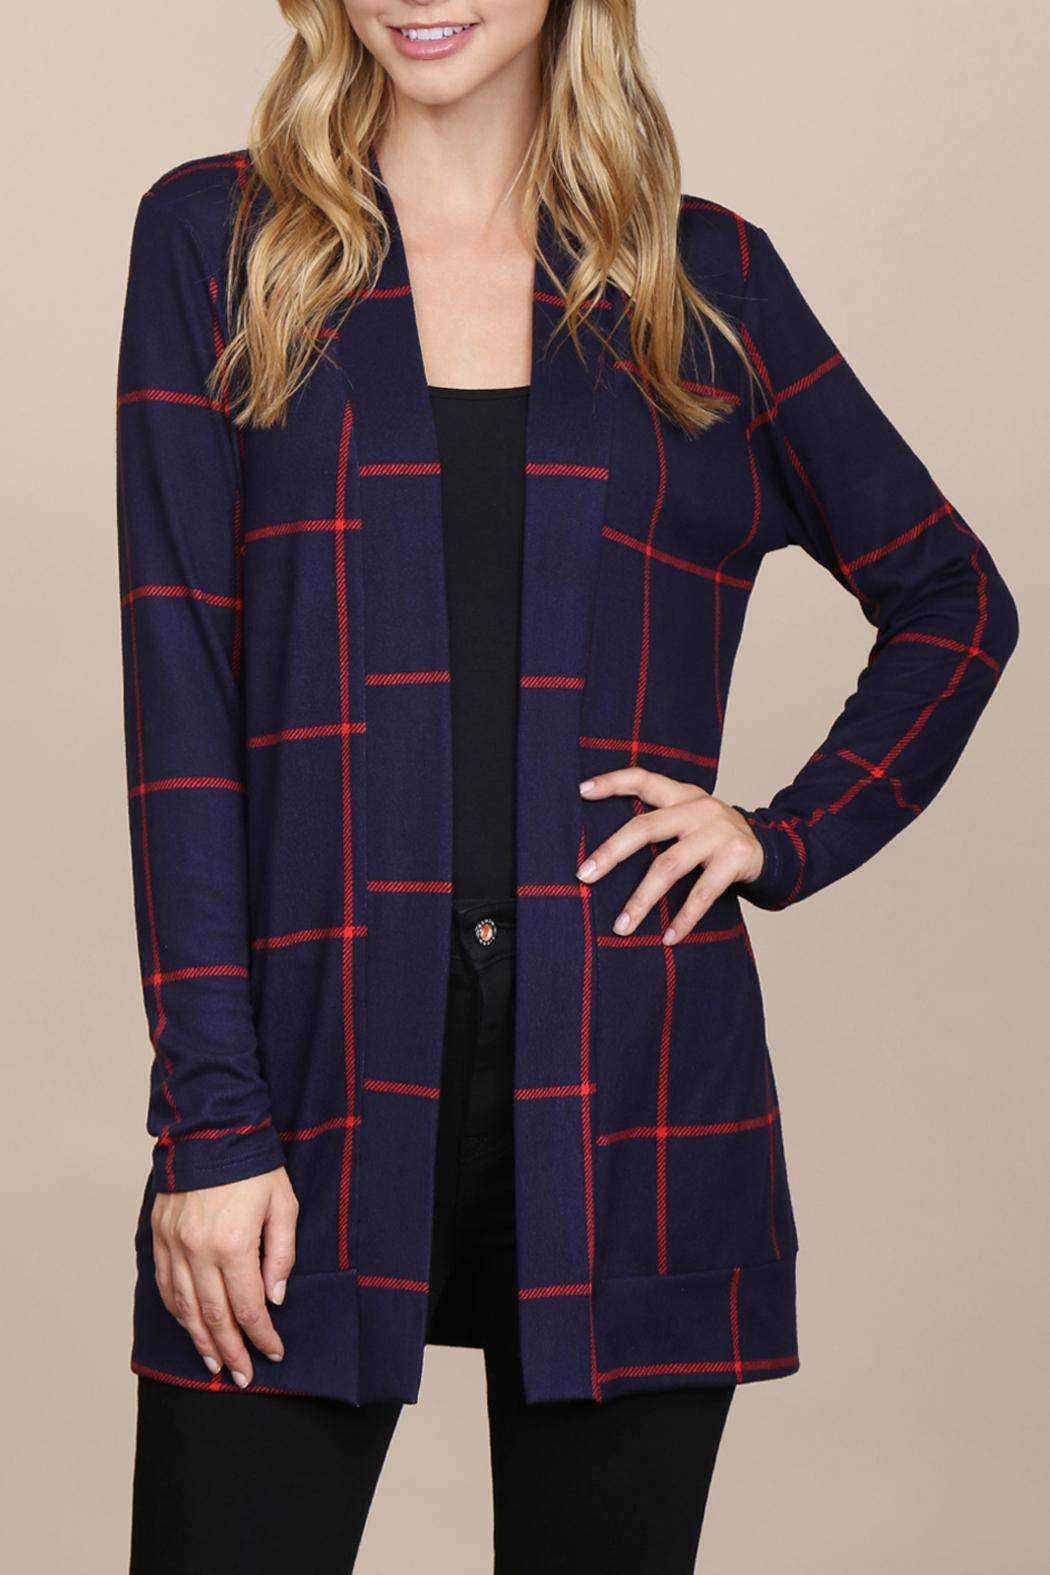 Riah Fashion Long-Sleeved-Open-Front Plaid Cardigan - Main Image